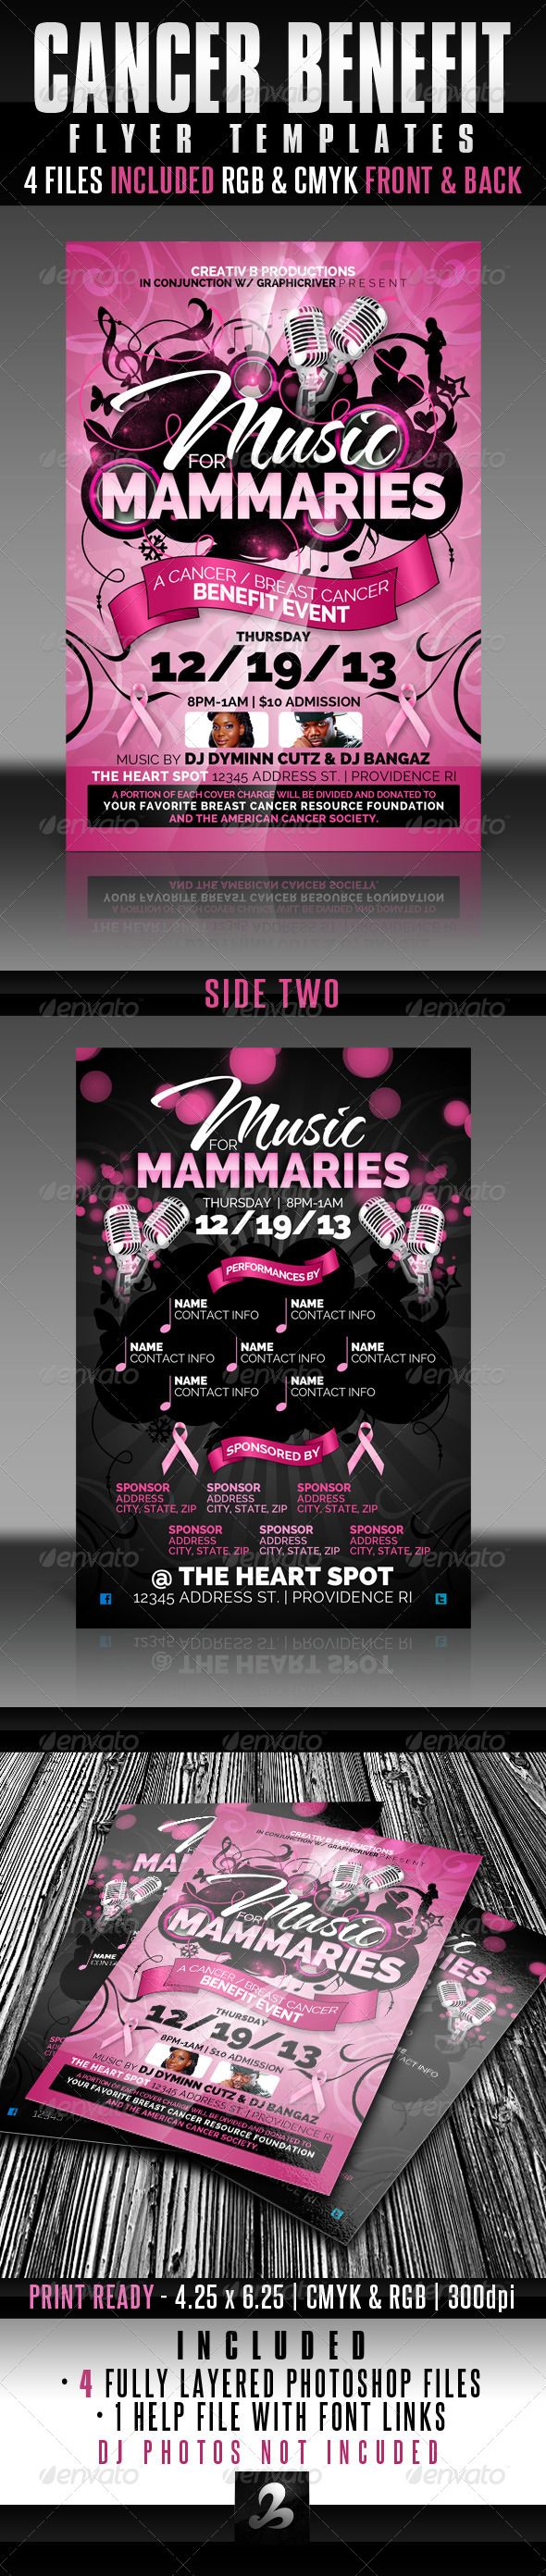 cancer benefit flyer templates fundraisers design elements and cancer benefit flyer templates graphicriver use this flyer and or invitation template for any